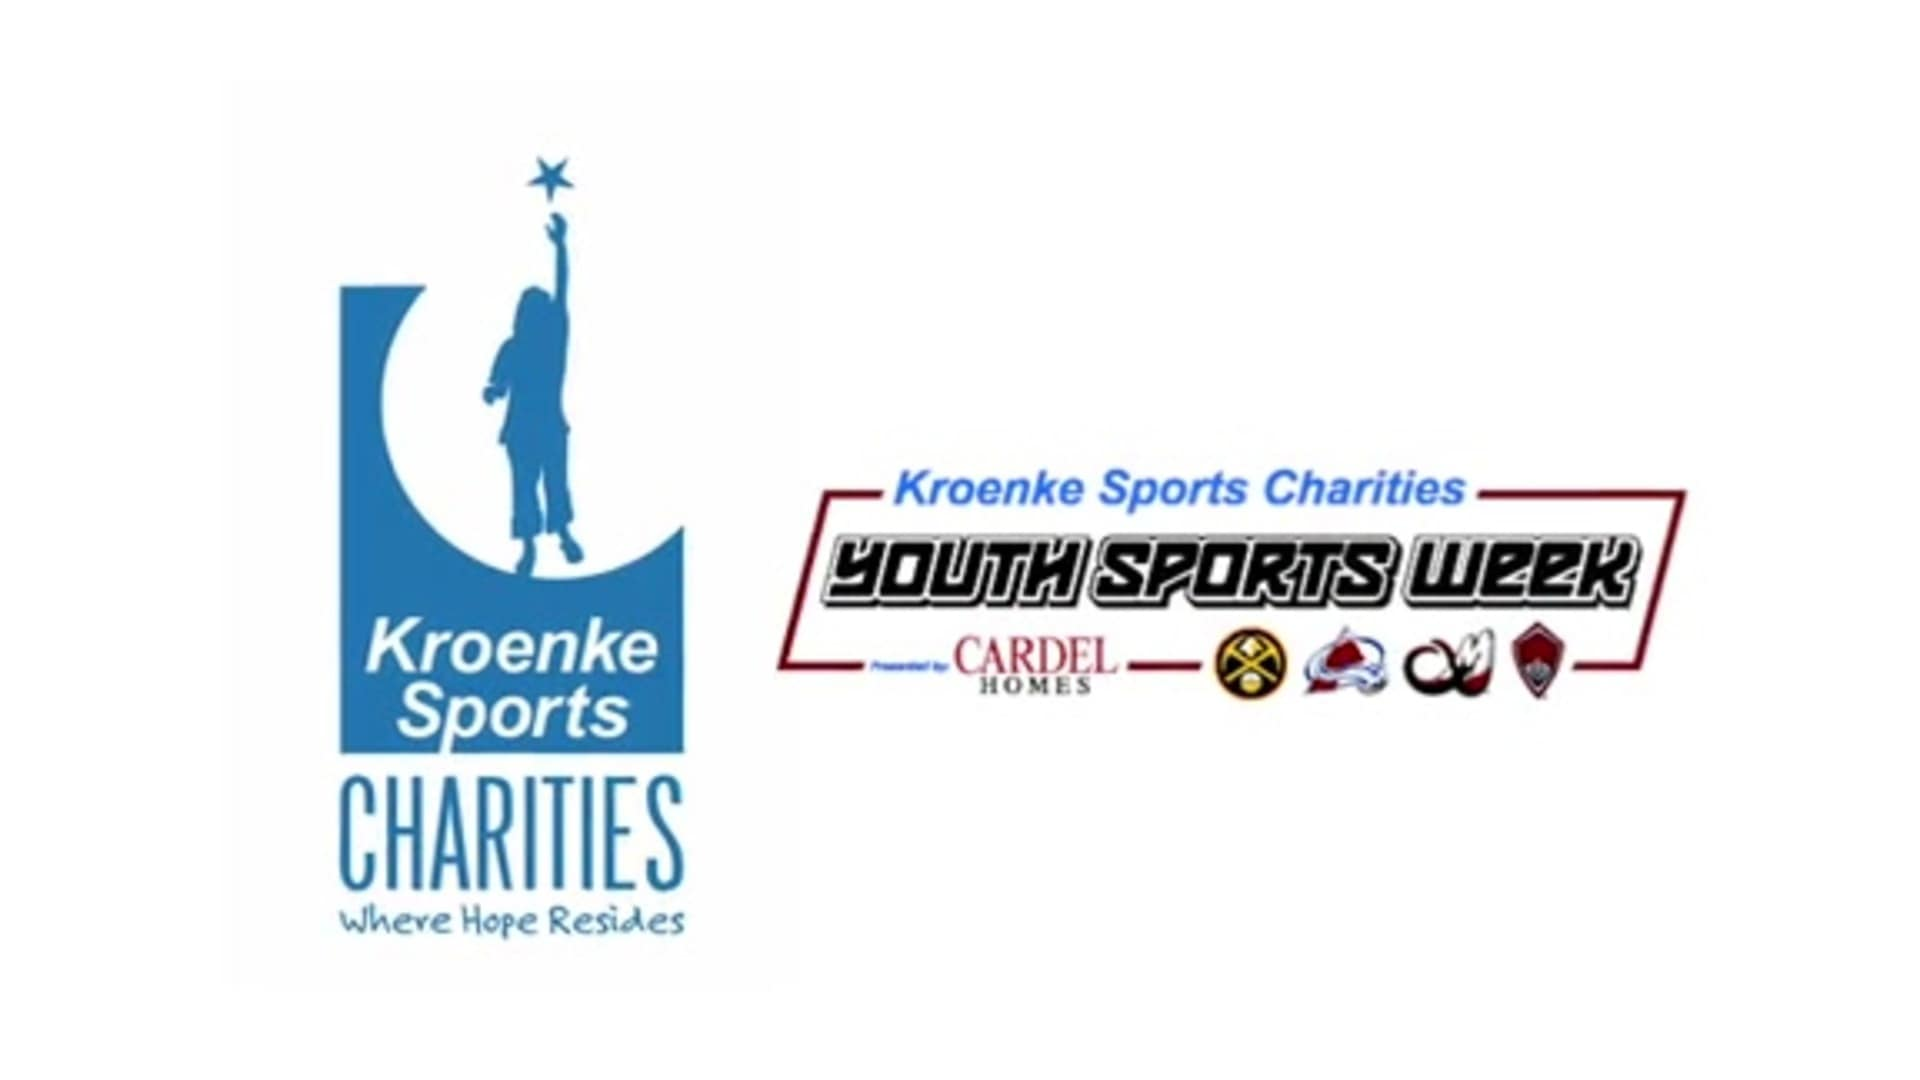 Youth Sports Week 2020 Presented by Cardel Homes Recap